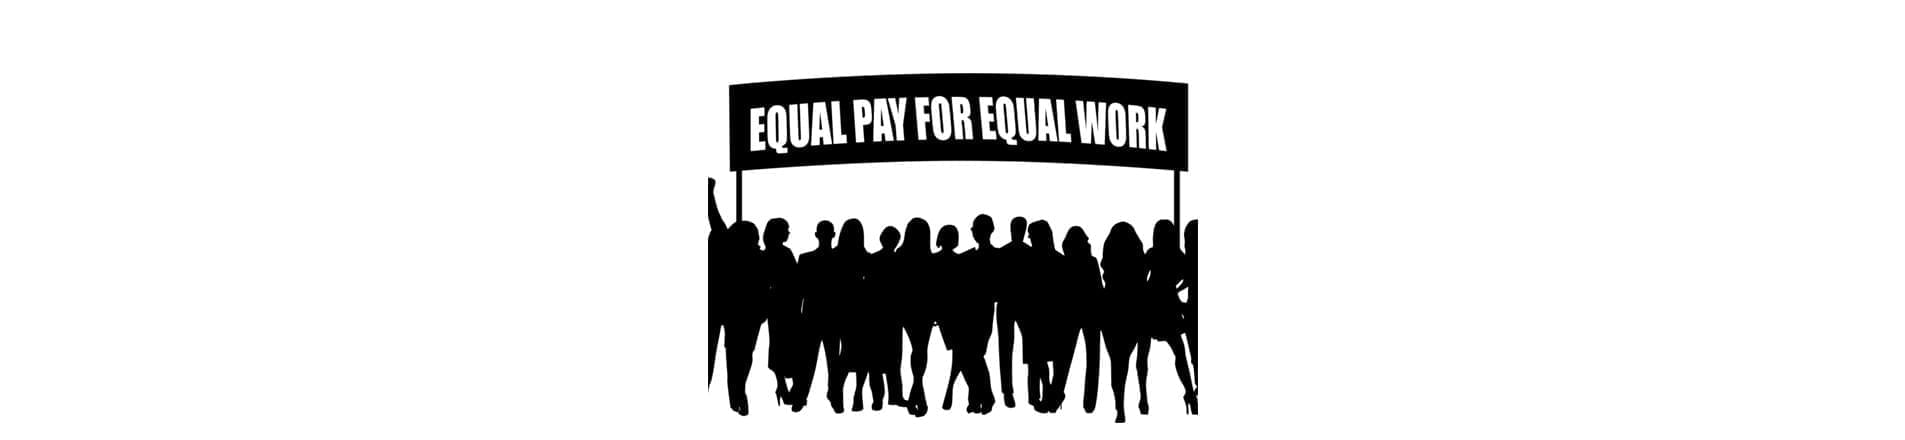 Women's march logo with banner Equal Pay for Equal Work with silhouettes of women and men underneath